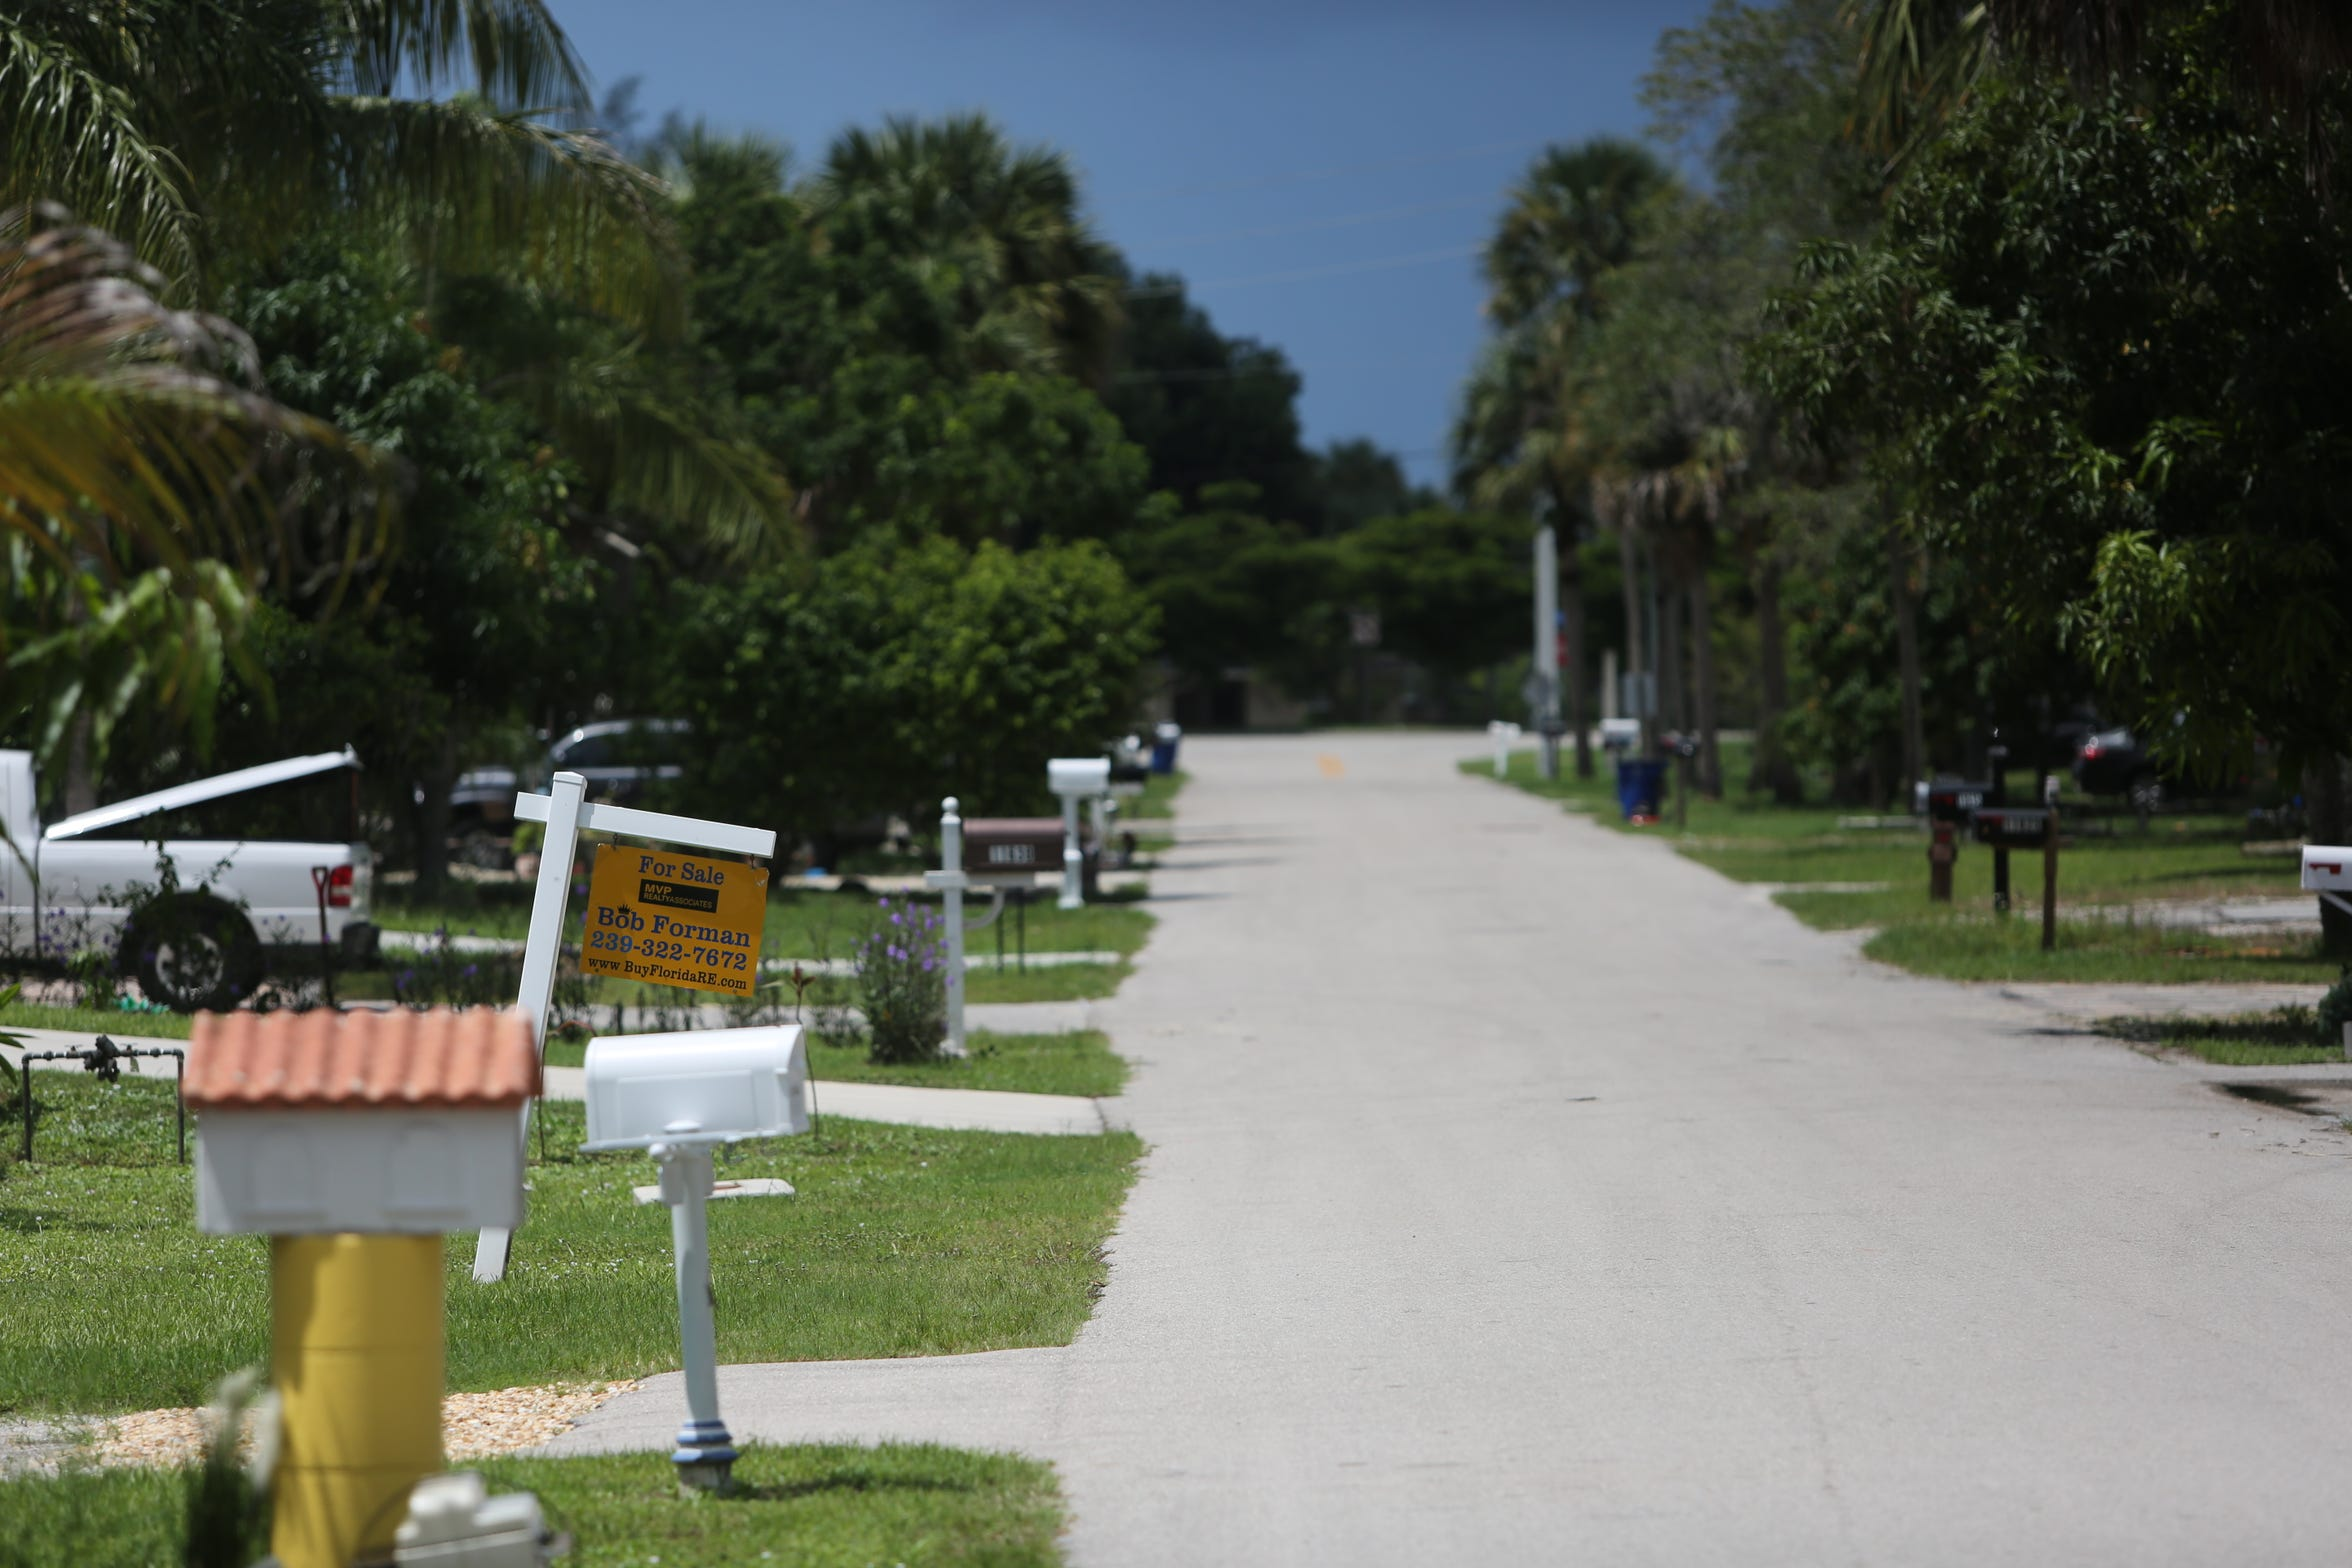 For sale signs are a common sight earlier this month on streets in a Bonita Springs neighborhood that was flooded by Hurricane Irma rains.